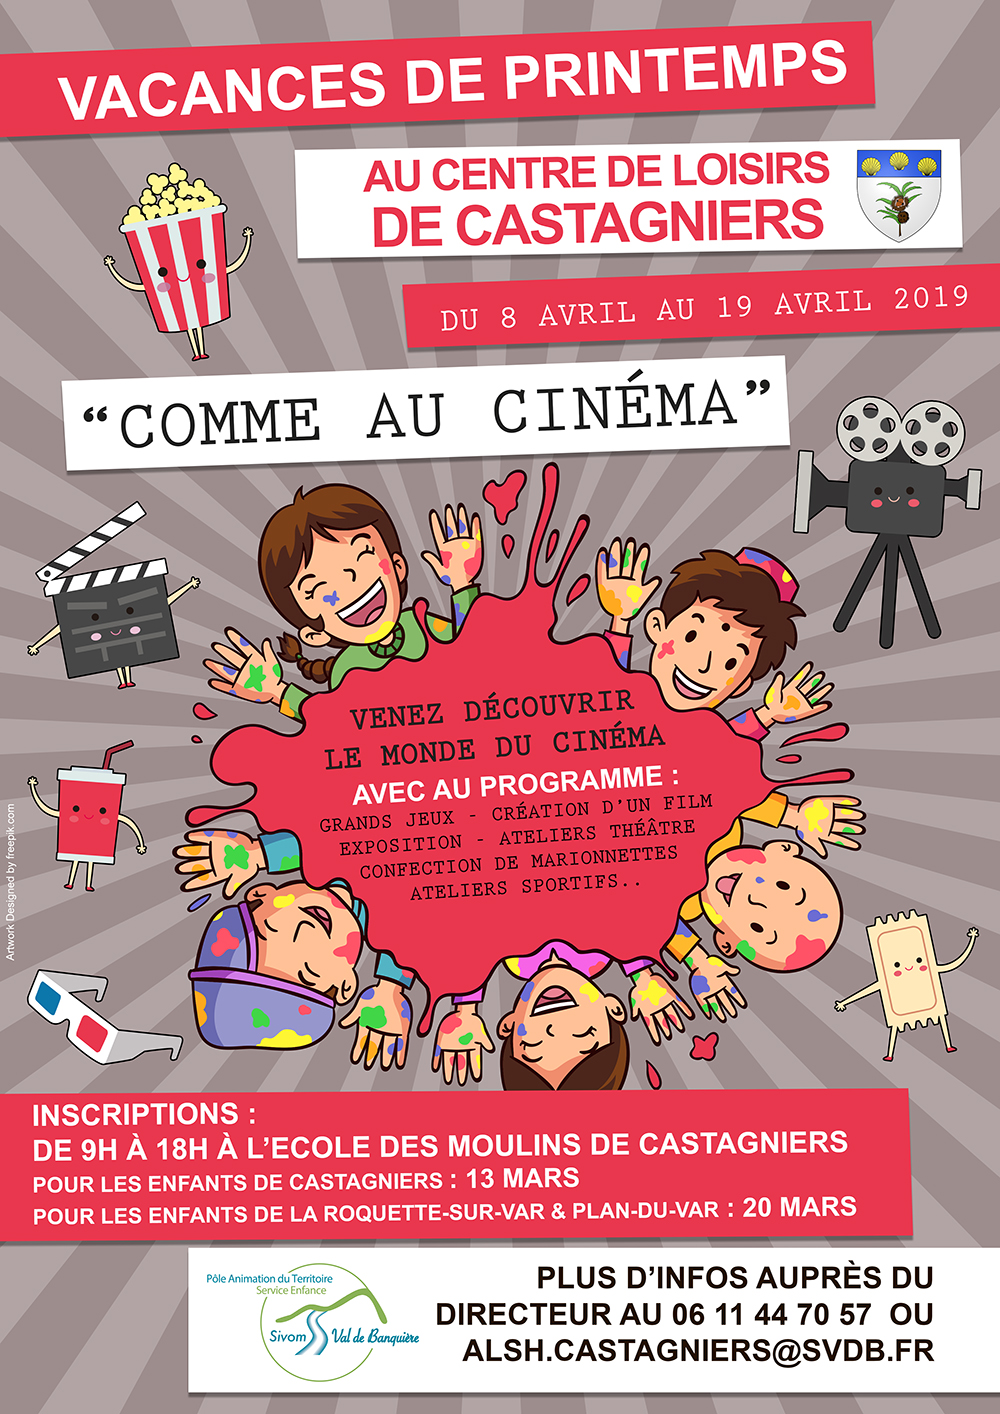 Inscriptions vacances de printemps : Castagniers